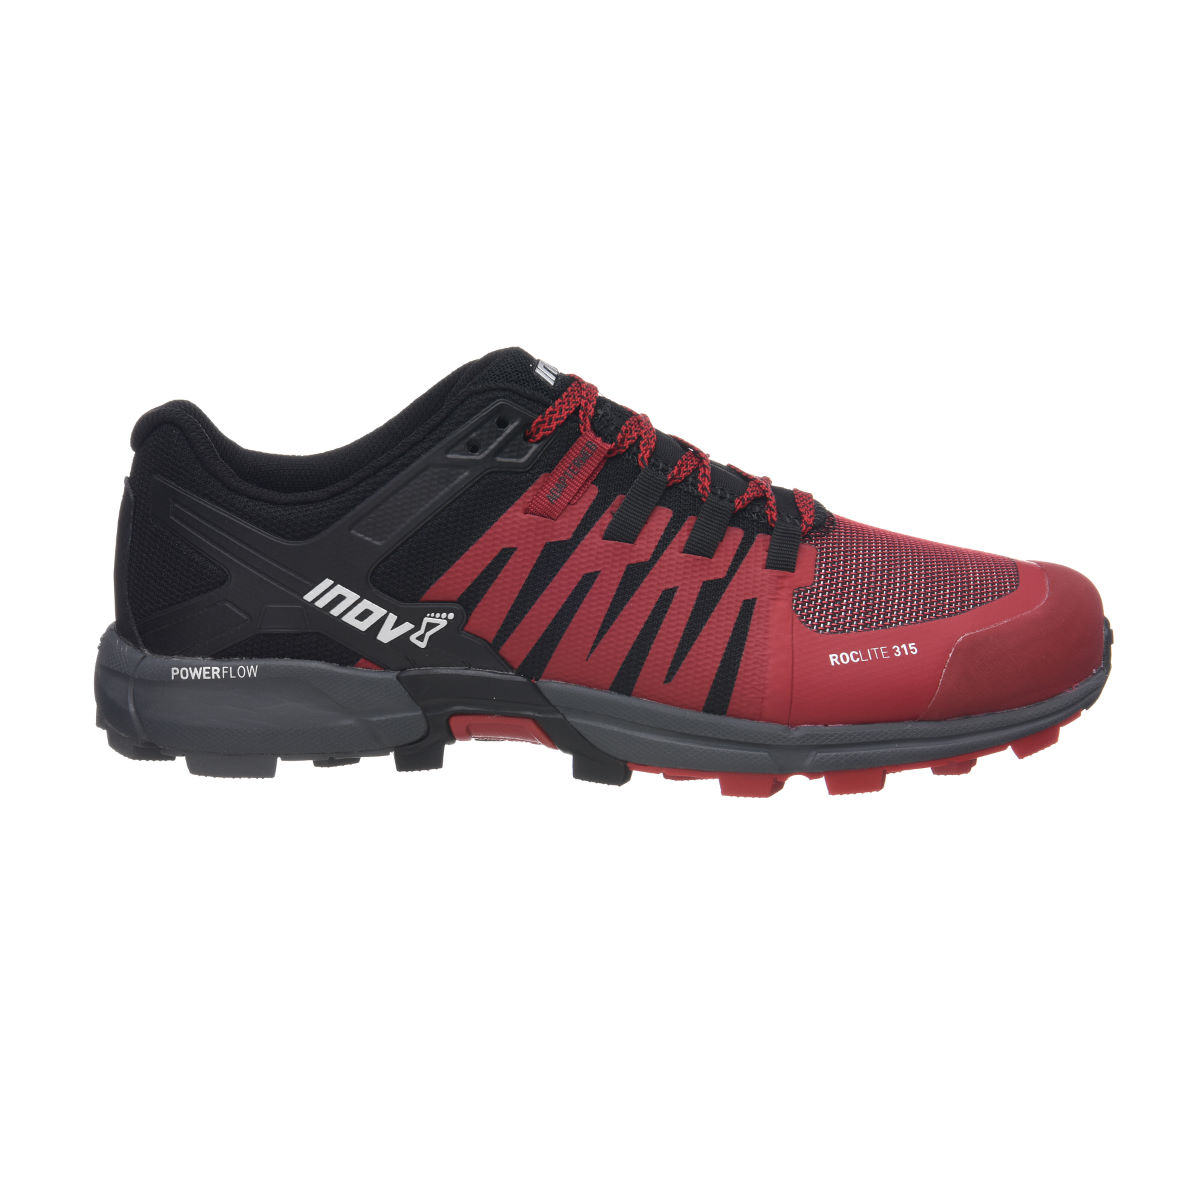 Inov-8 Roclite 315 GTX Shoes - UK 9 Black/Red | Offroad Running Shoes